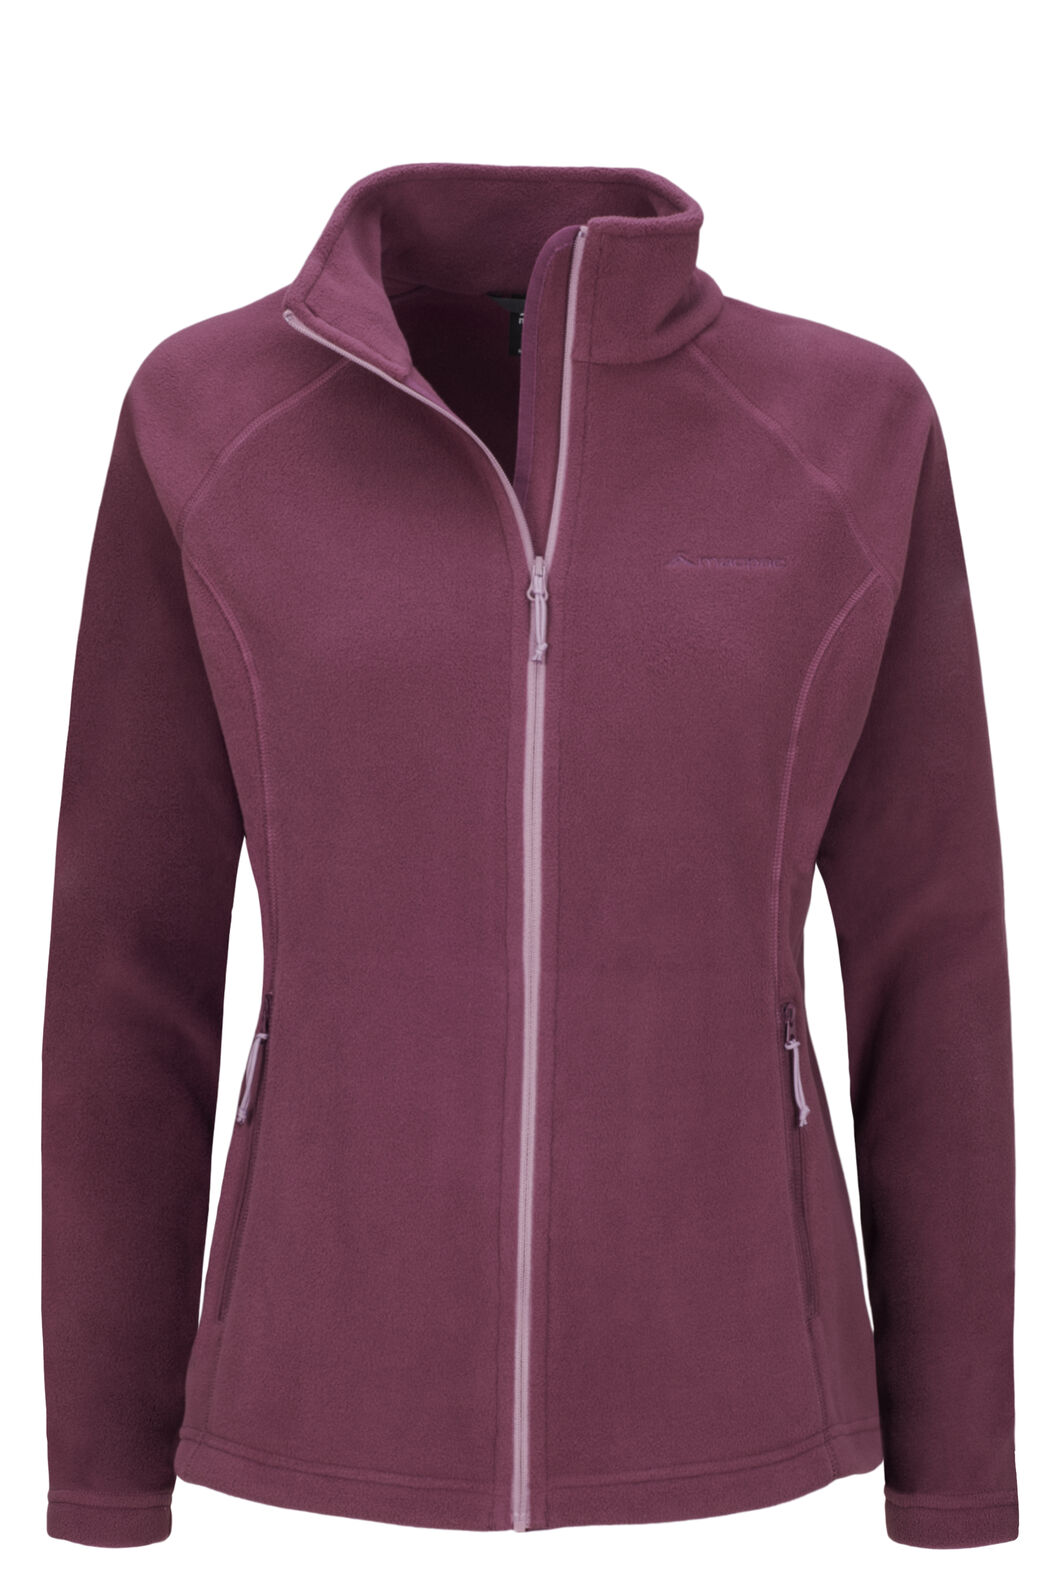 Macpac Tui Polartec® Micro Fleece® Jacket — Women's, Amaranth, hi-res